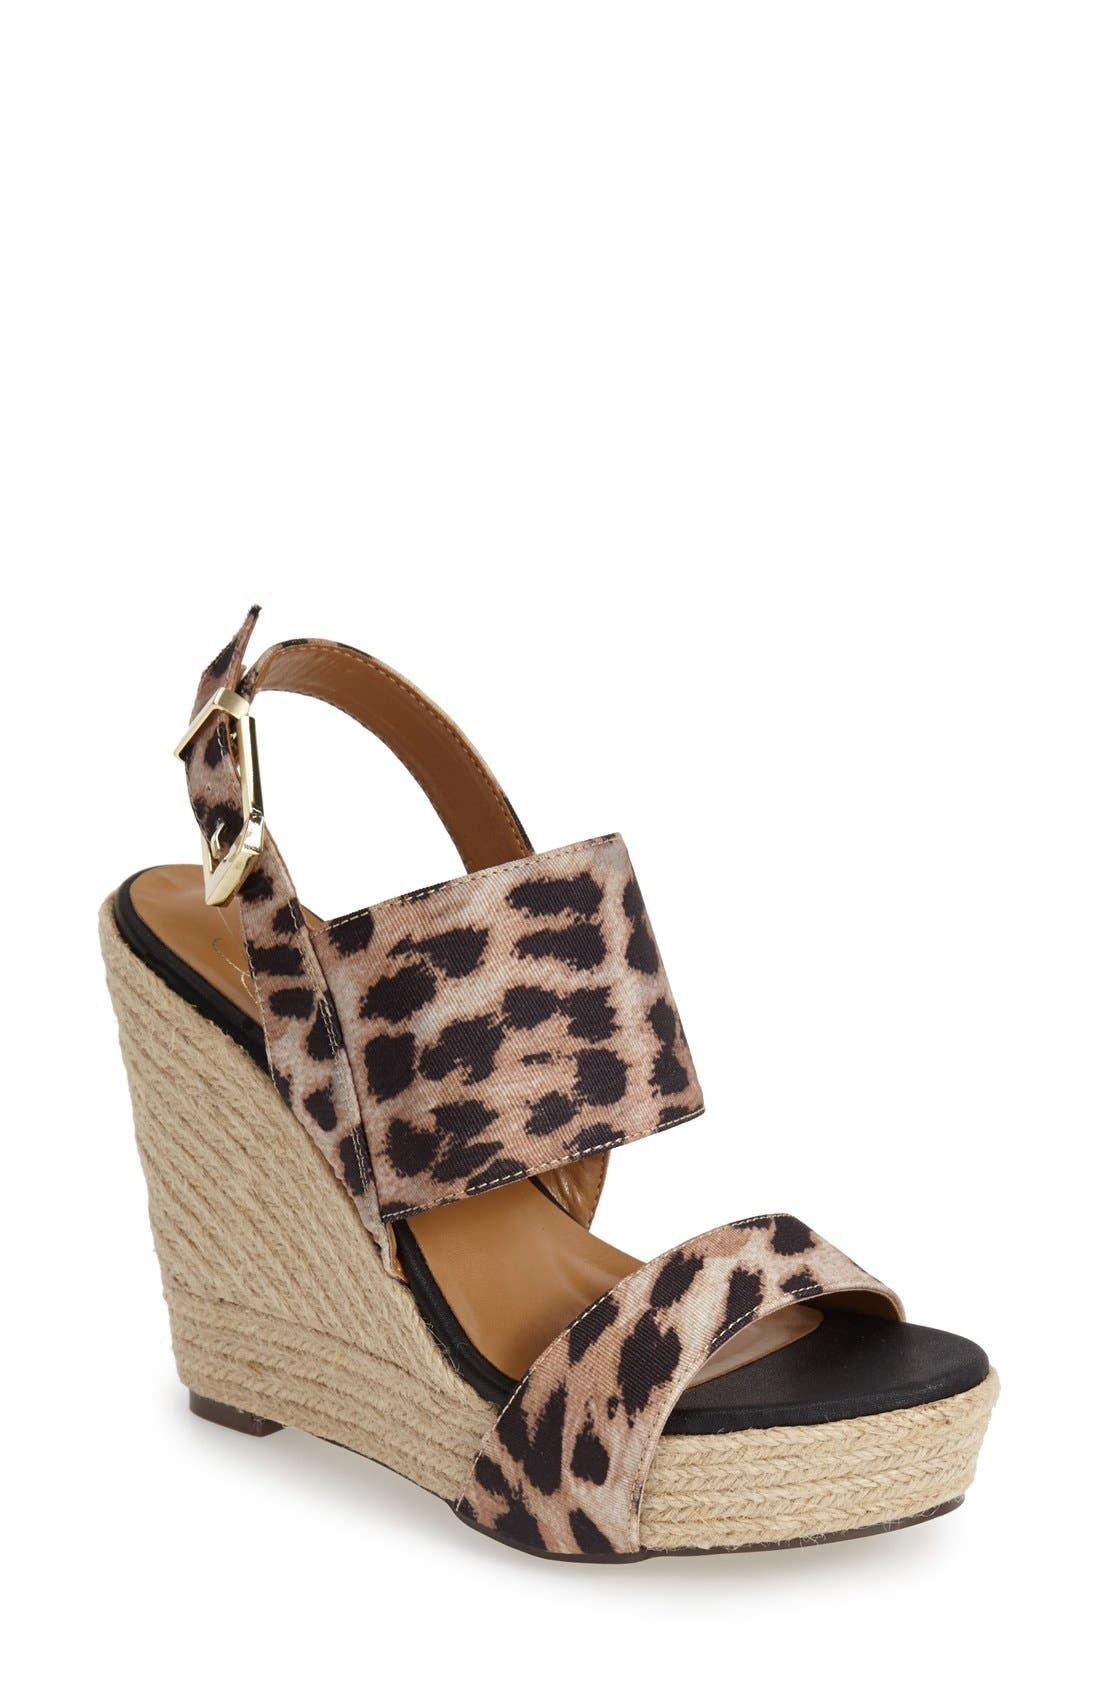 Alternate Image 1 Selected - REPORT Signature 'Cass' Wedge Sandal (Women)